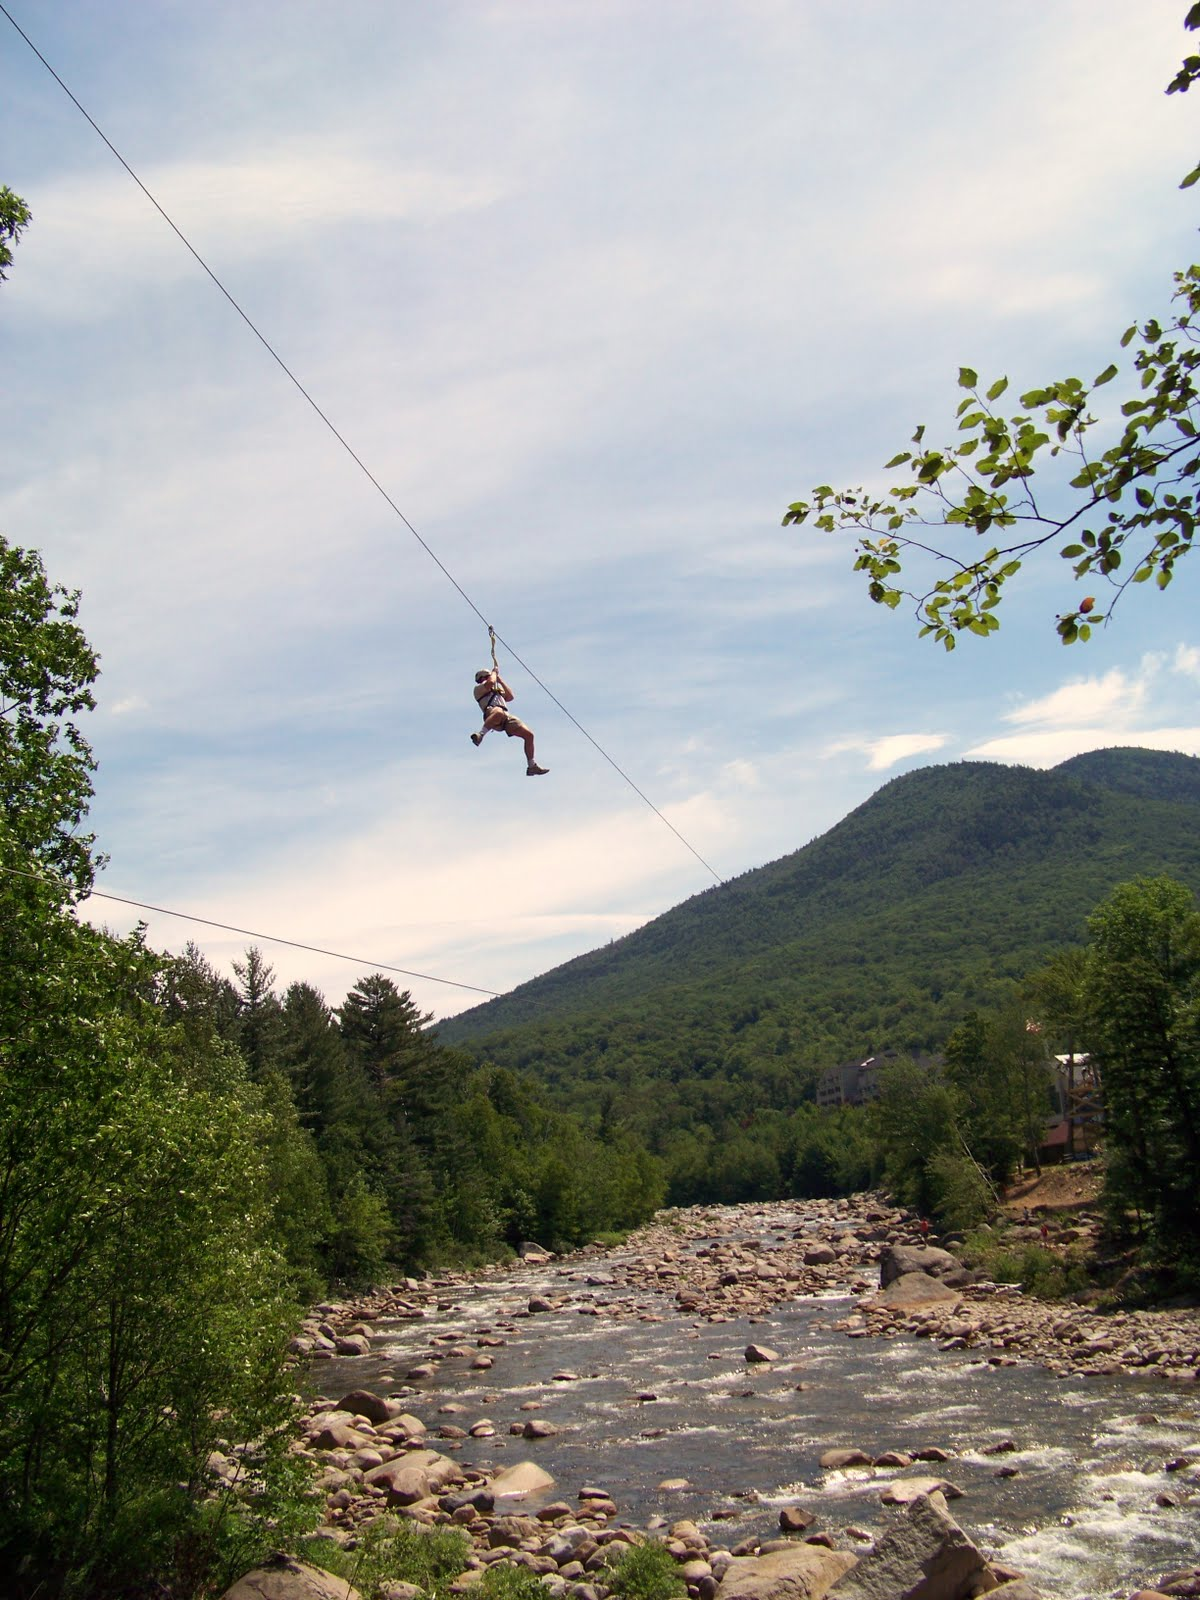 Cable Zip Line : White mountains adventure concierge new zipline at loon